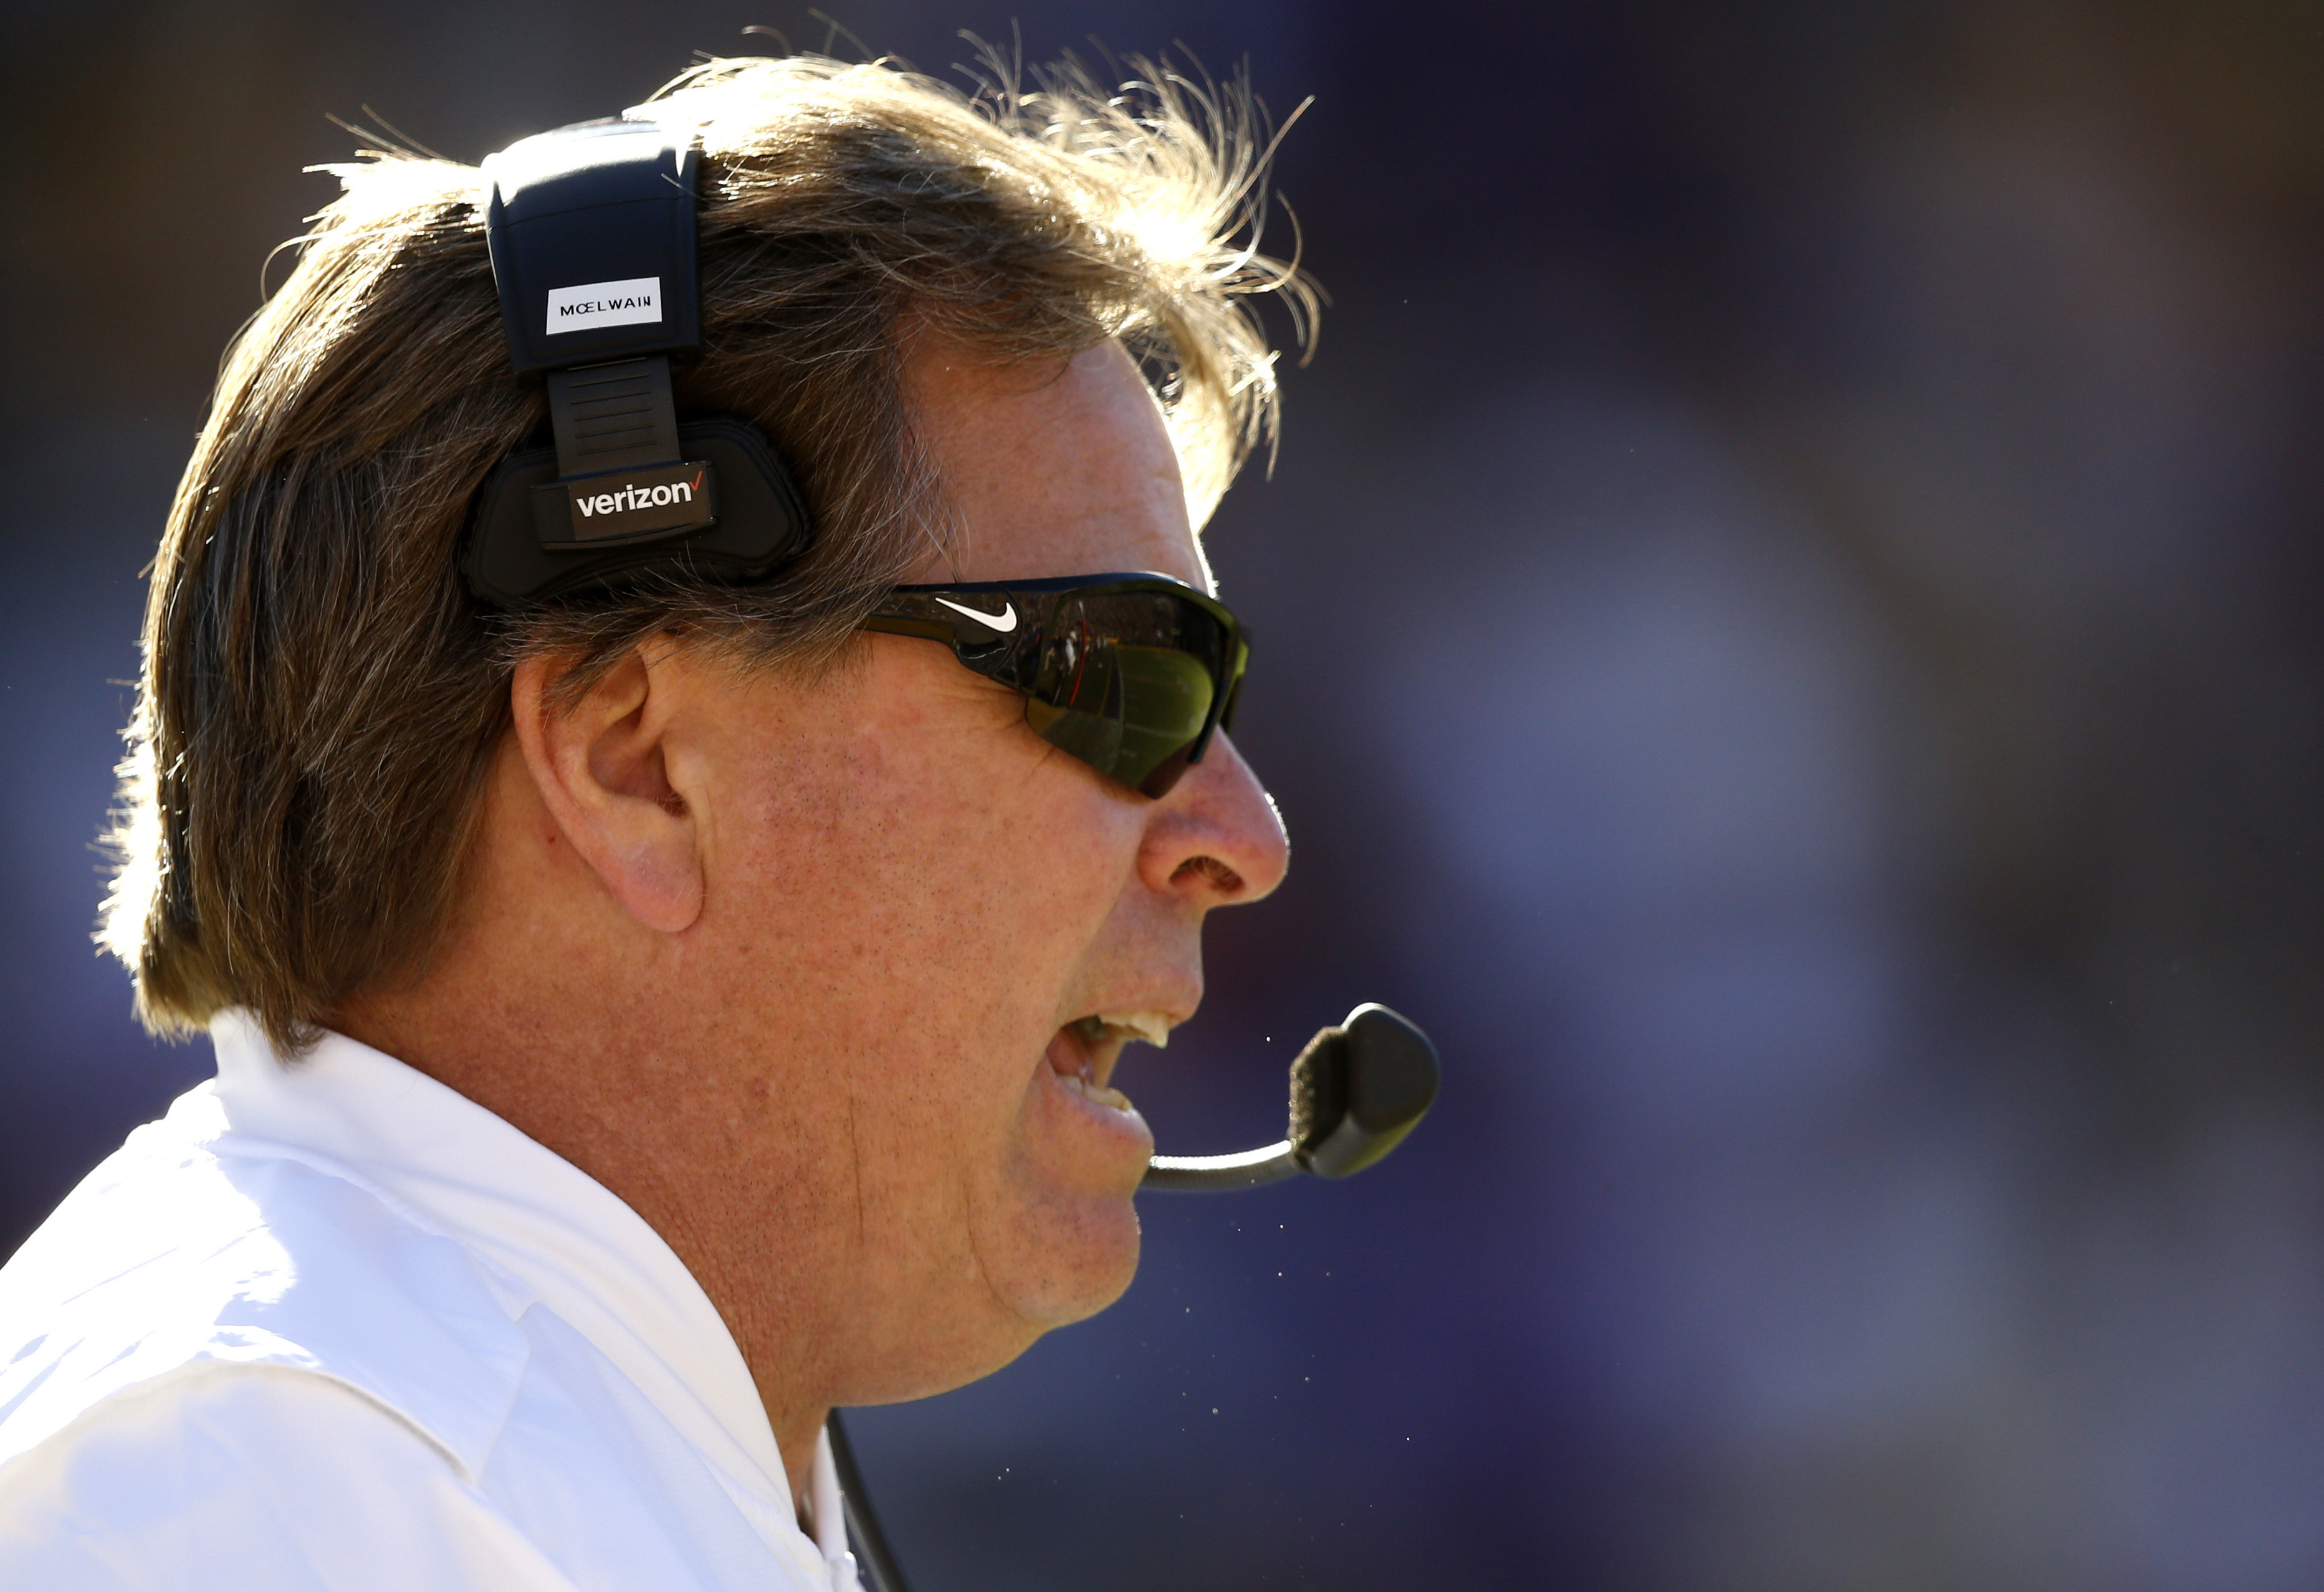 Florida head coach Jim McElwain watches from the sideline in the second half an NCAA college football game against LSU in Baton Rouge, La., Saturday, Nov. 19, 2016. Florida won 16-10. (AP Photo/Gerald Herbert)